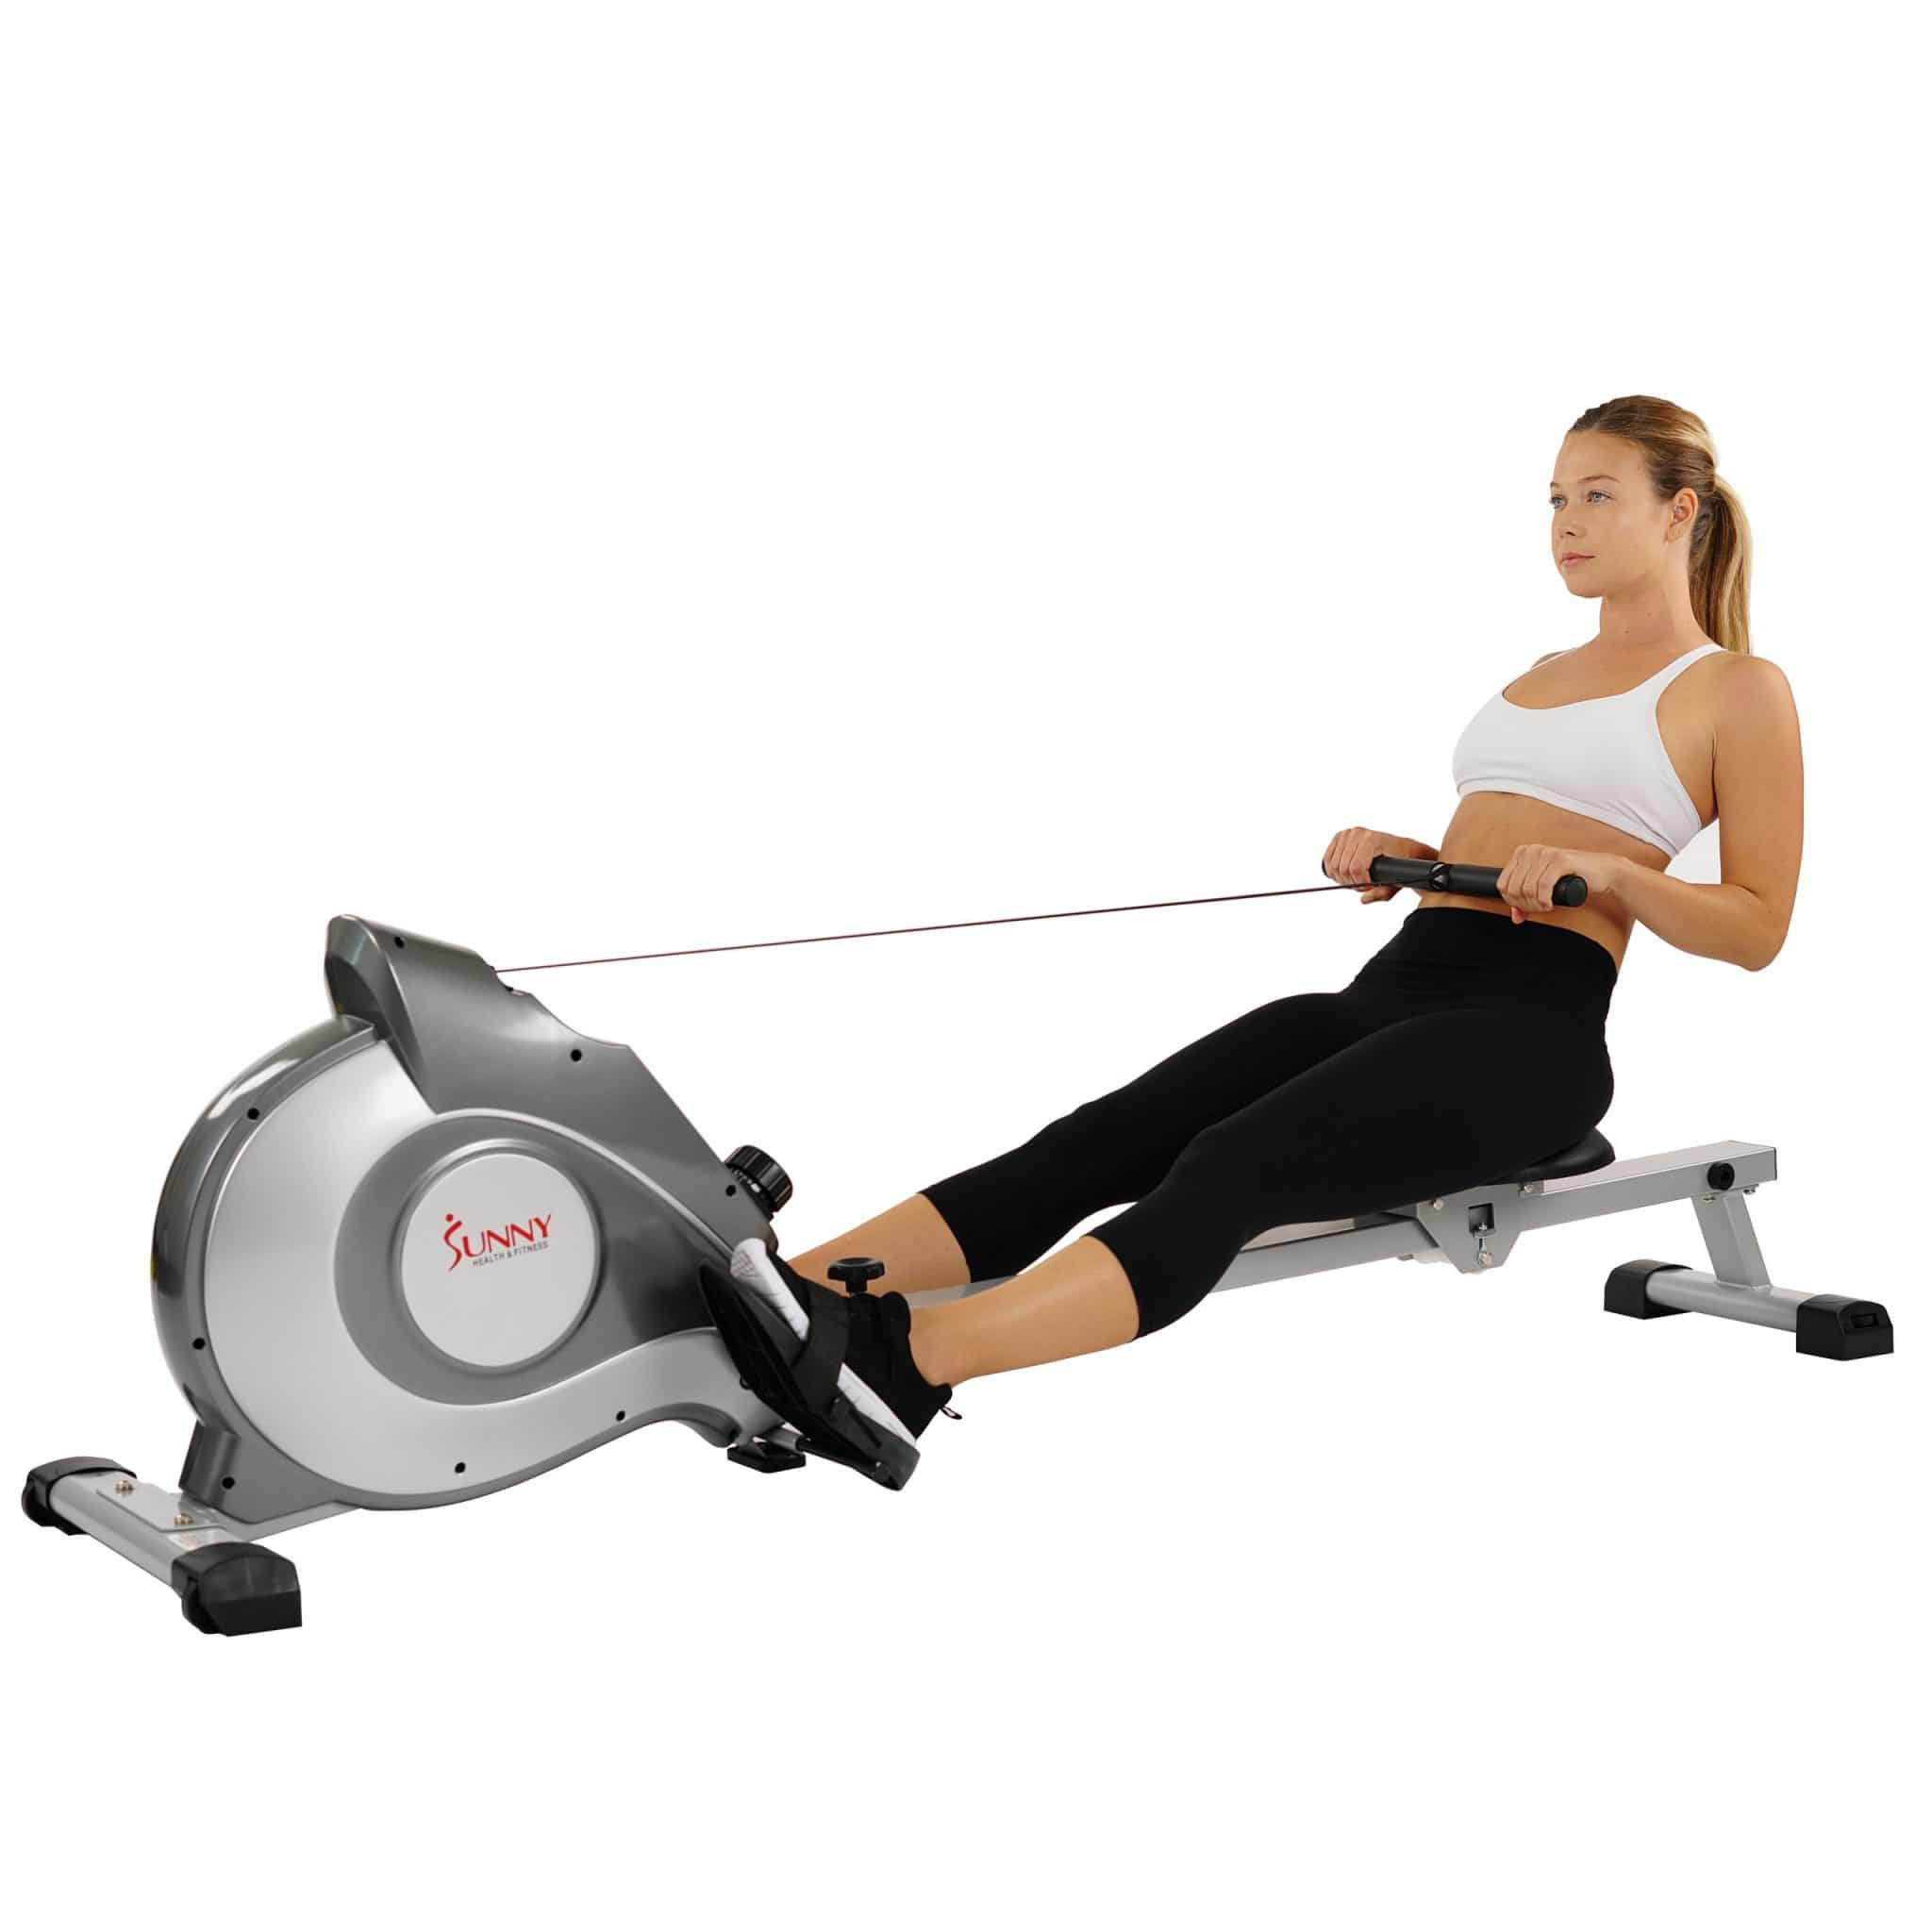 2. rowing machines cheap